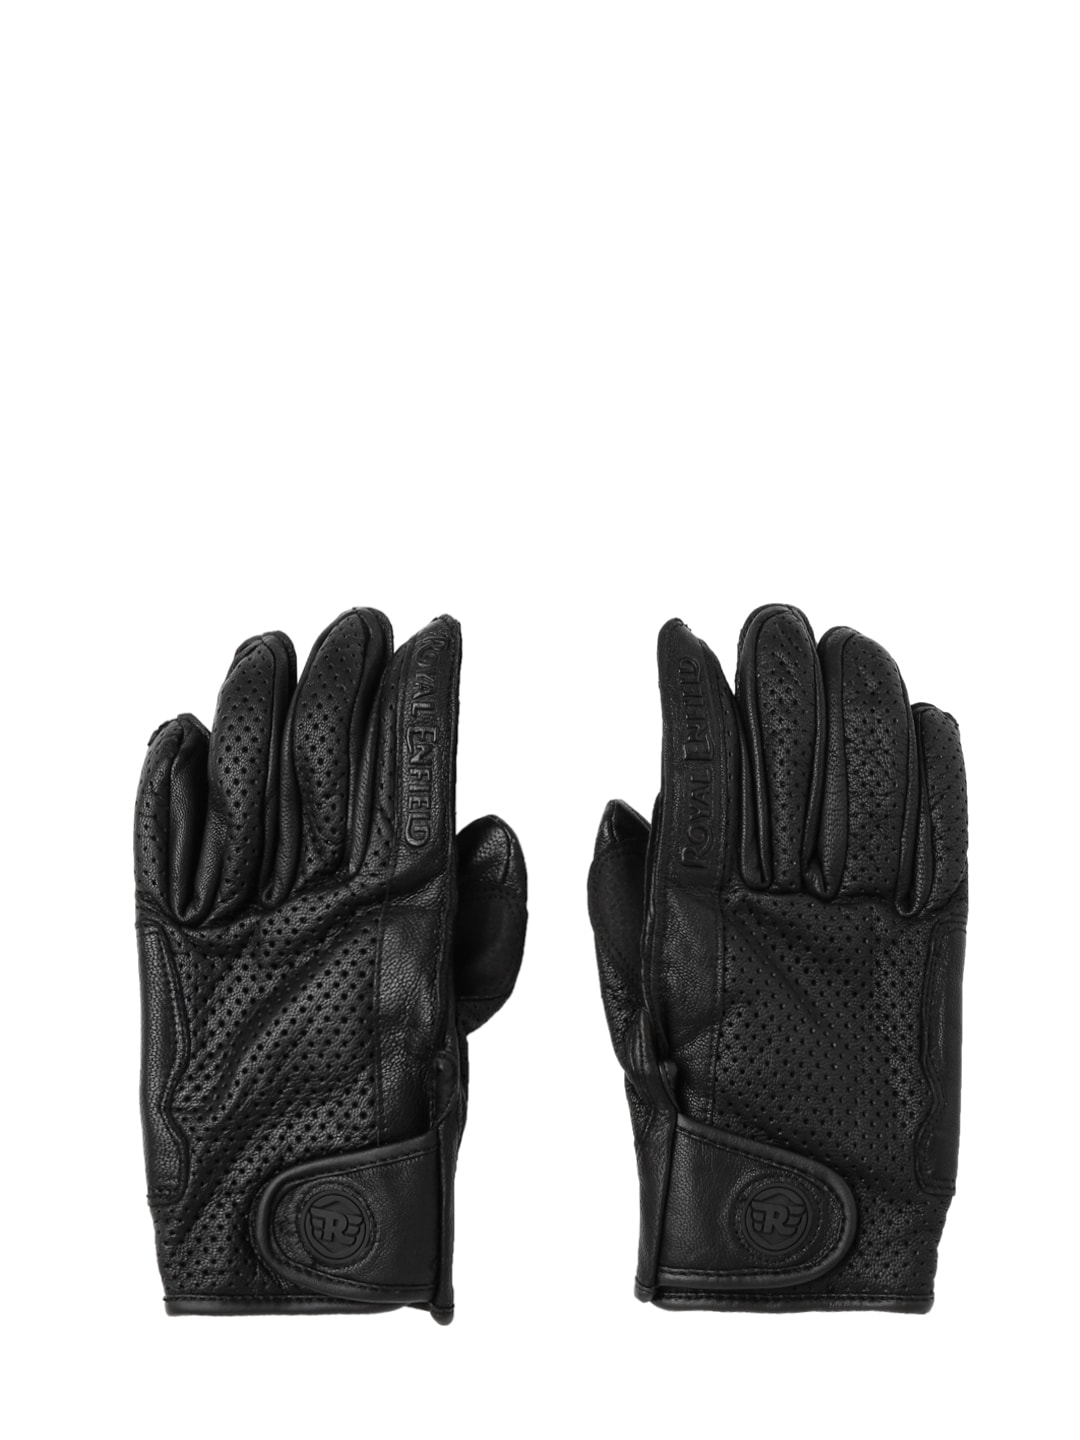 Buy leather hand gloves online india - Buy Leather Hand Gloves Online India 7